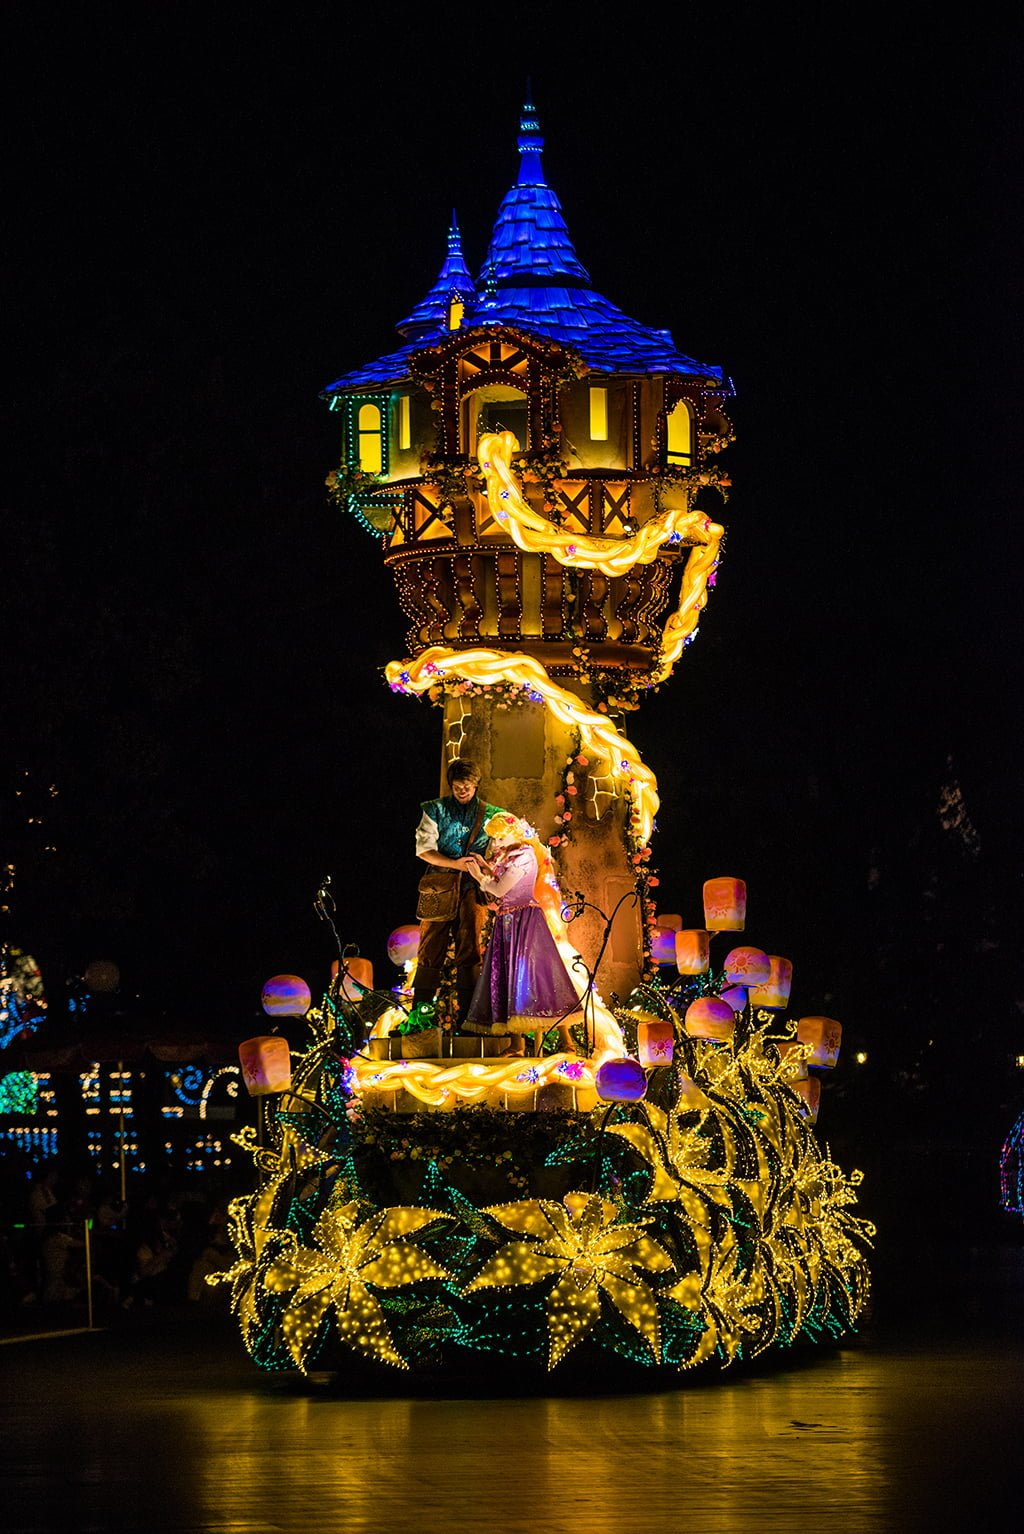 Dreamlights: Disney's Best Night Parade - Disney Tourist Blog